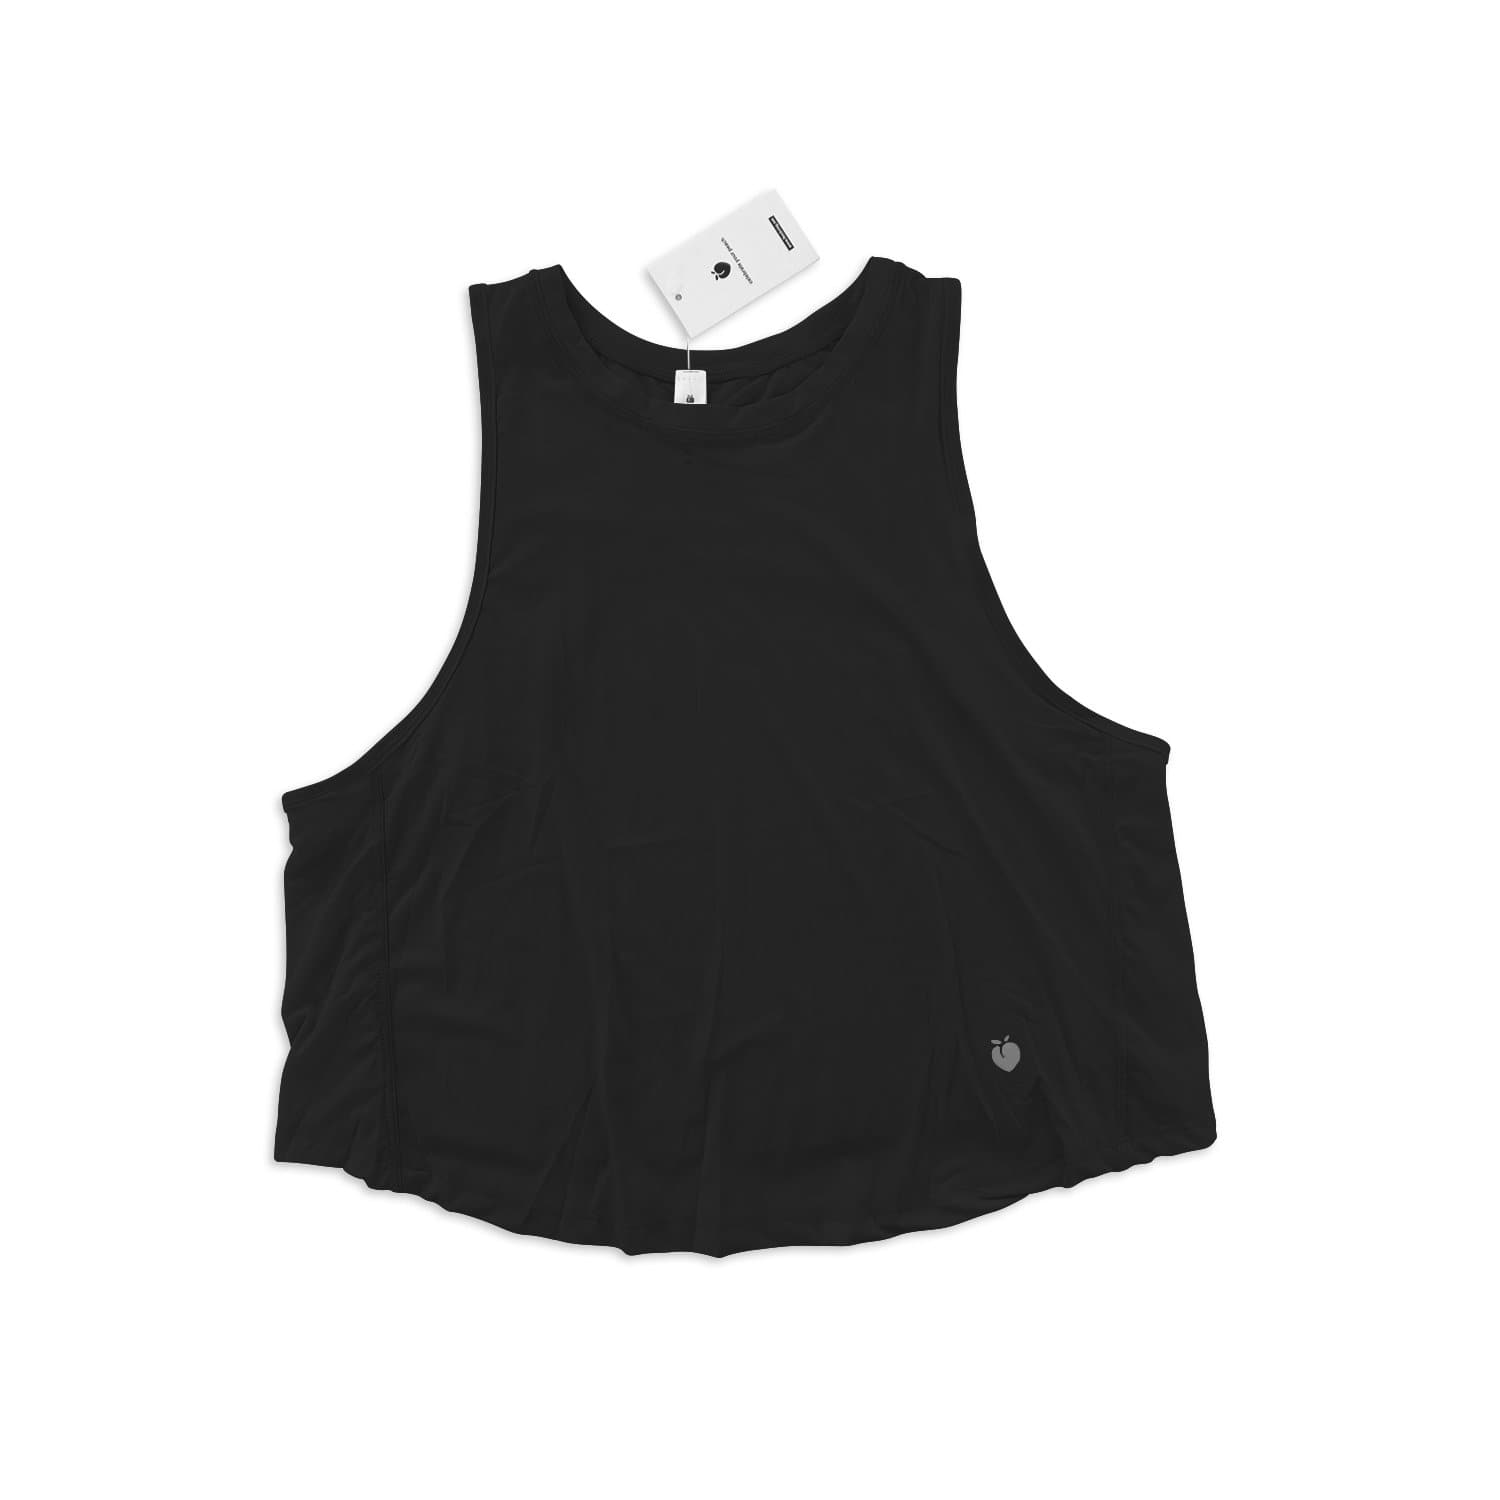 Dream Tank - Black